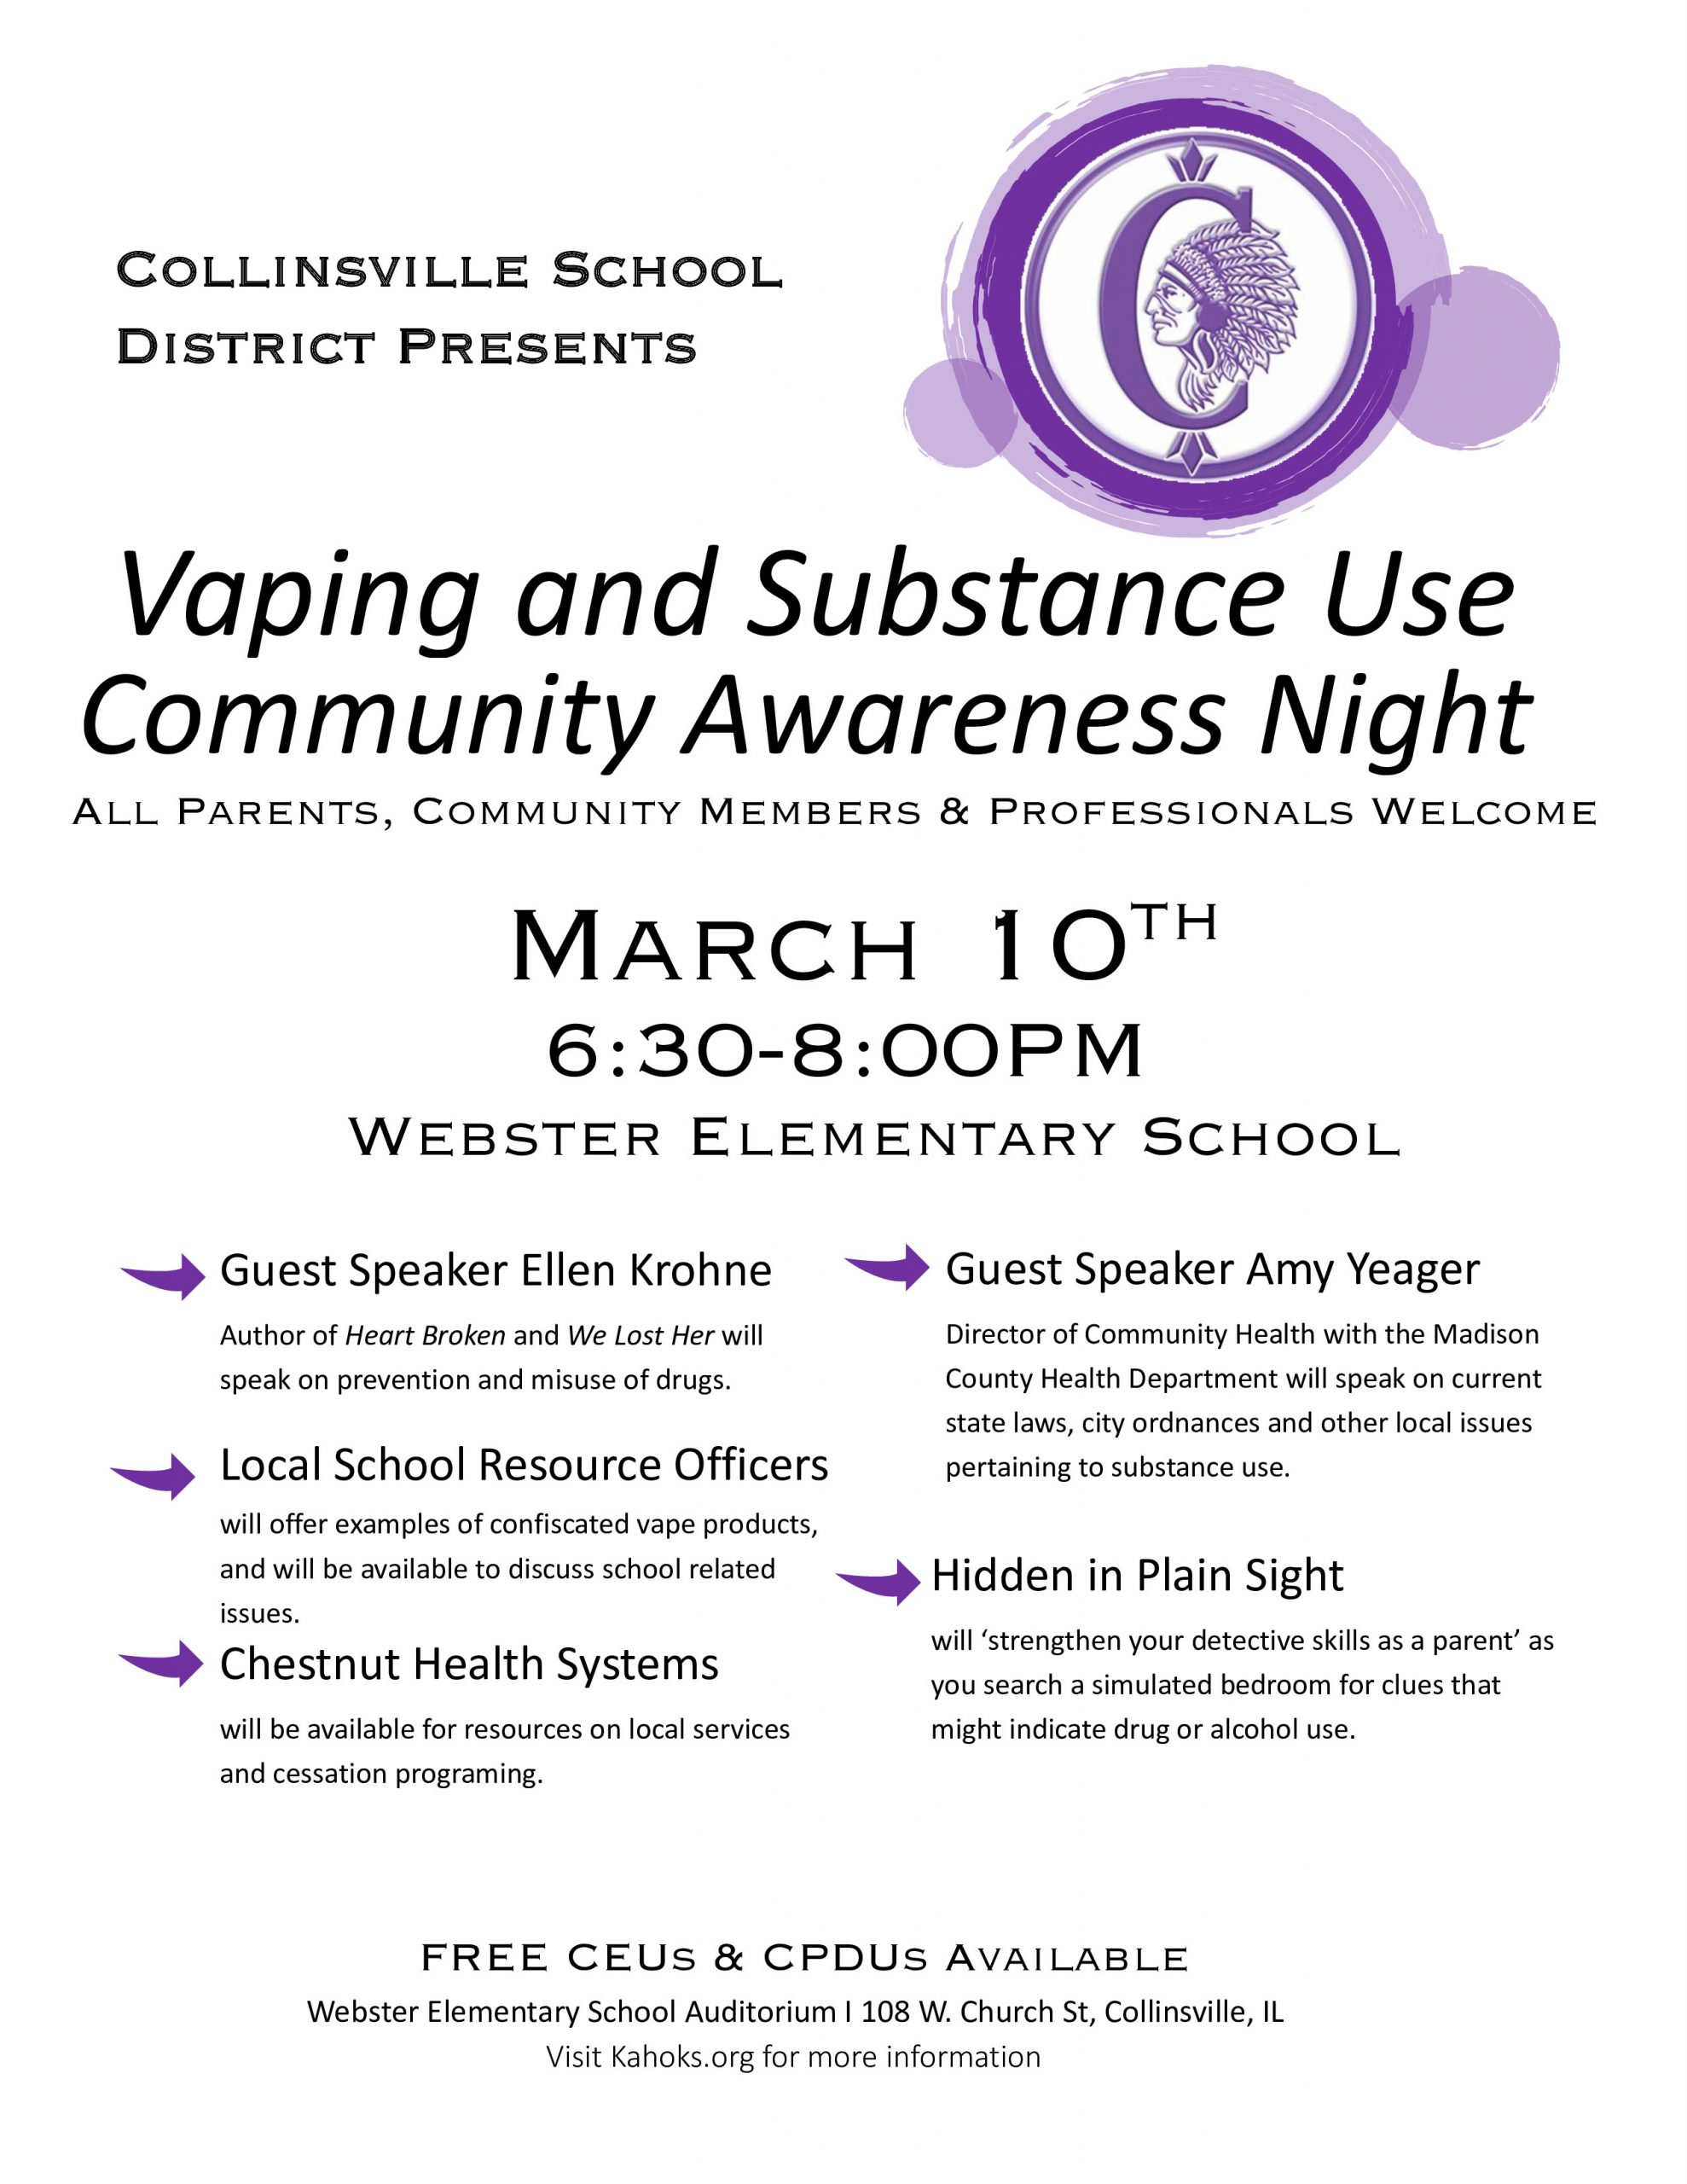 Event Flyer for Vaping & Substance Abuse Awareness Night